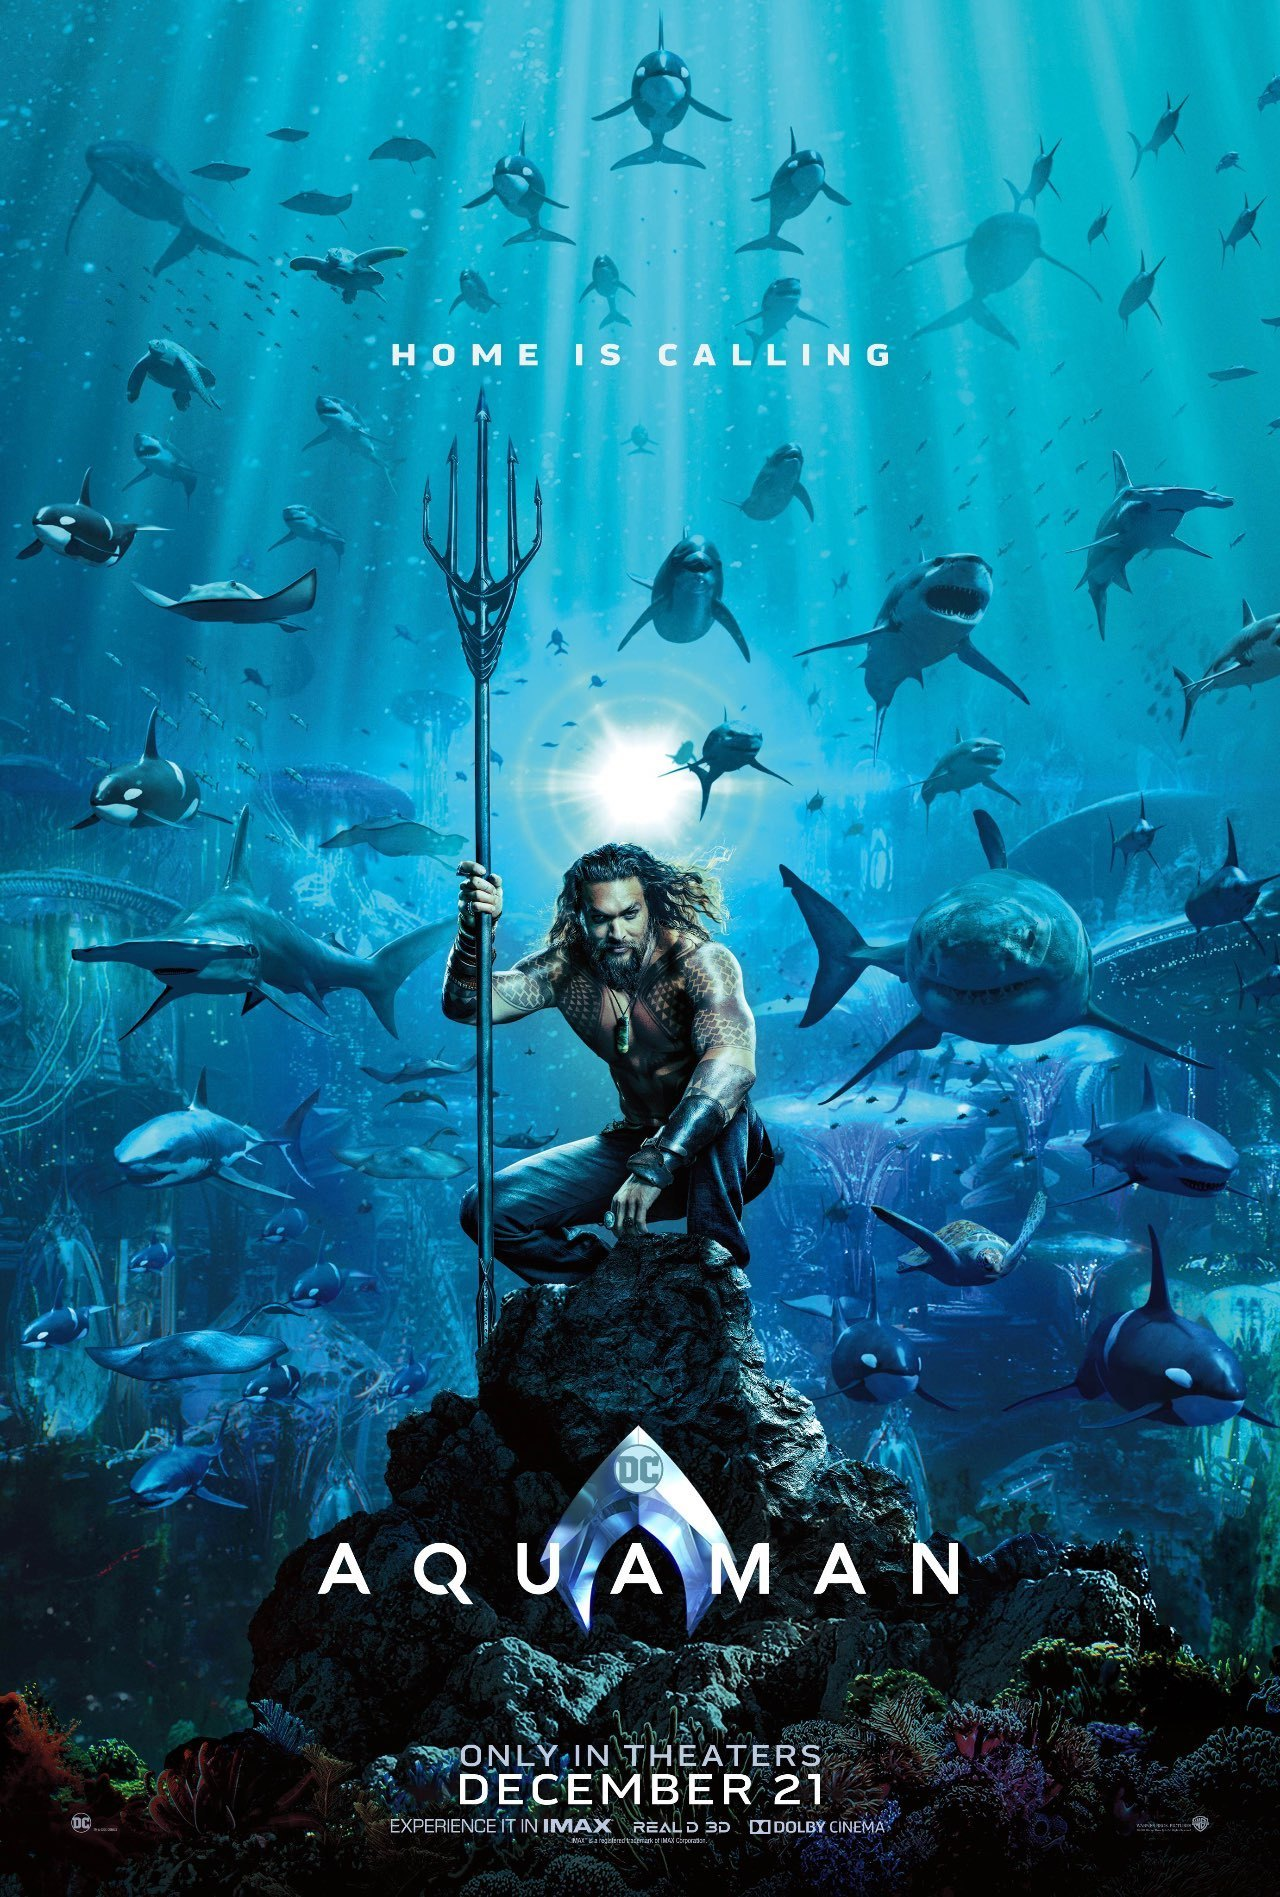 Aquaman movie poster memes july 2018 popsugar entertainment photo 12 finding nemo remake only in theaters december 21 altavistaventures Image collections